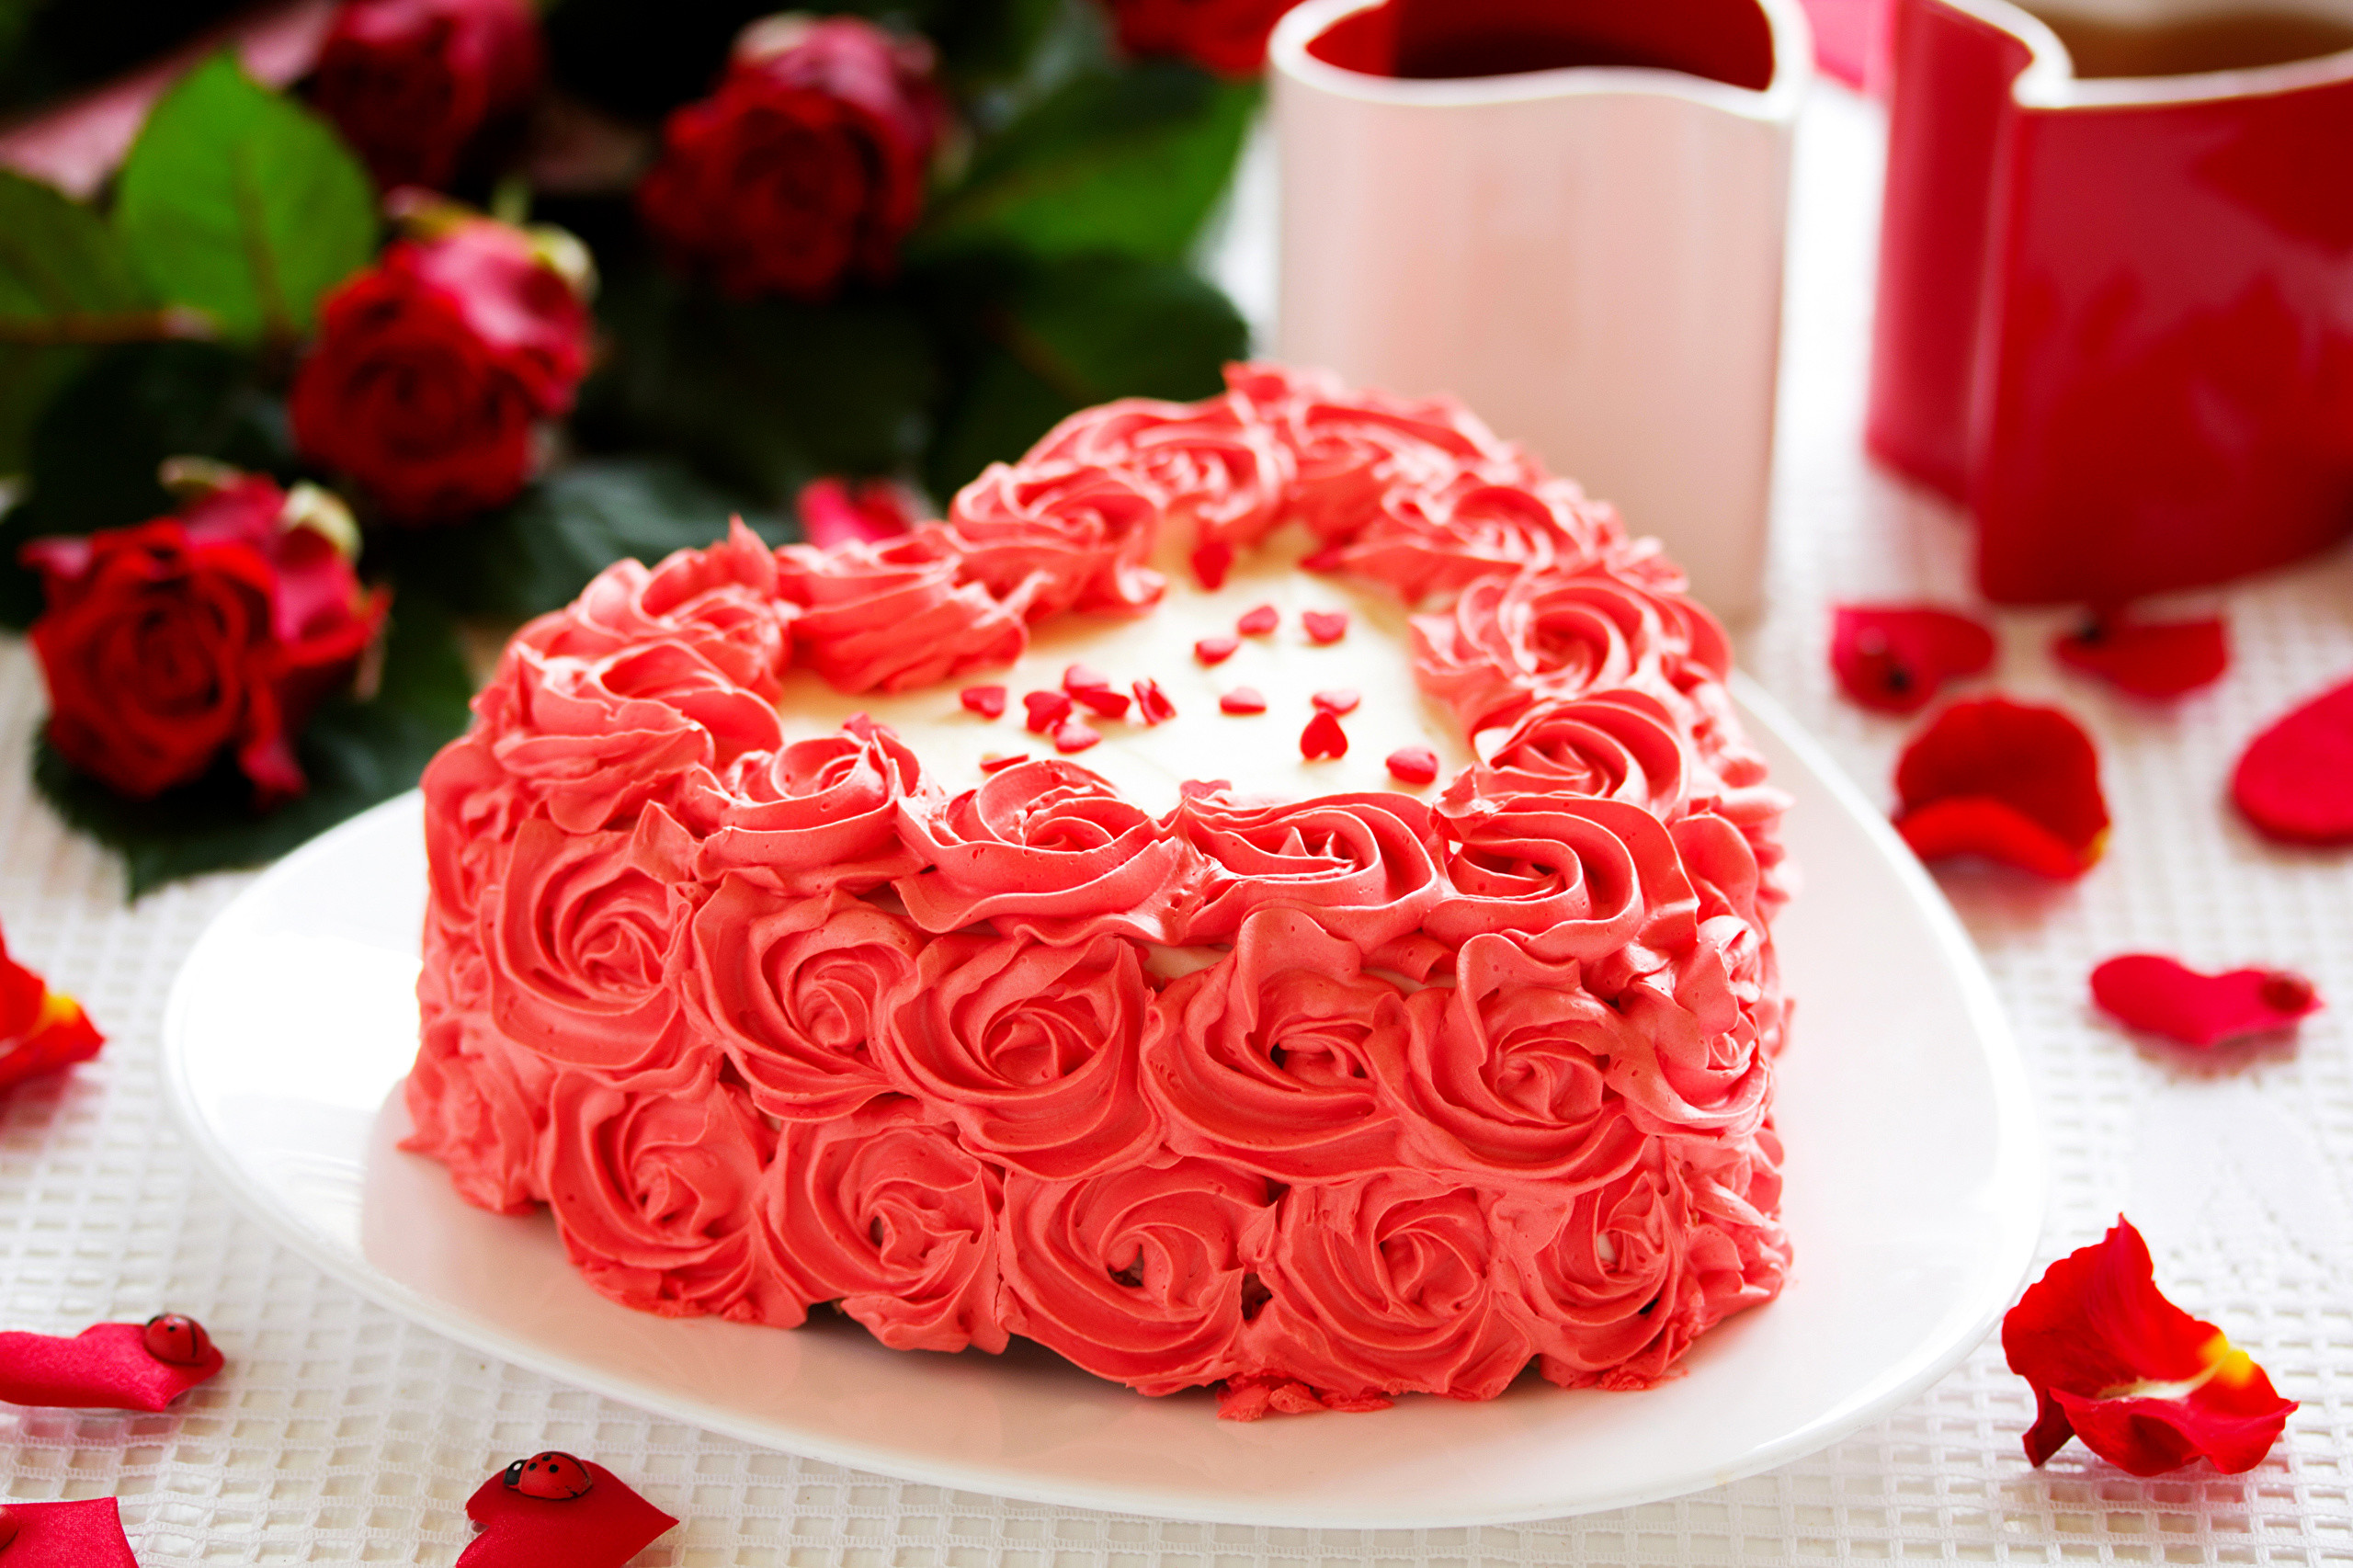 sweets cakes roses heart love